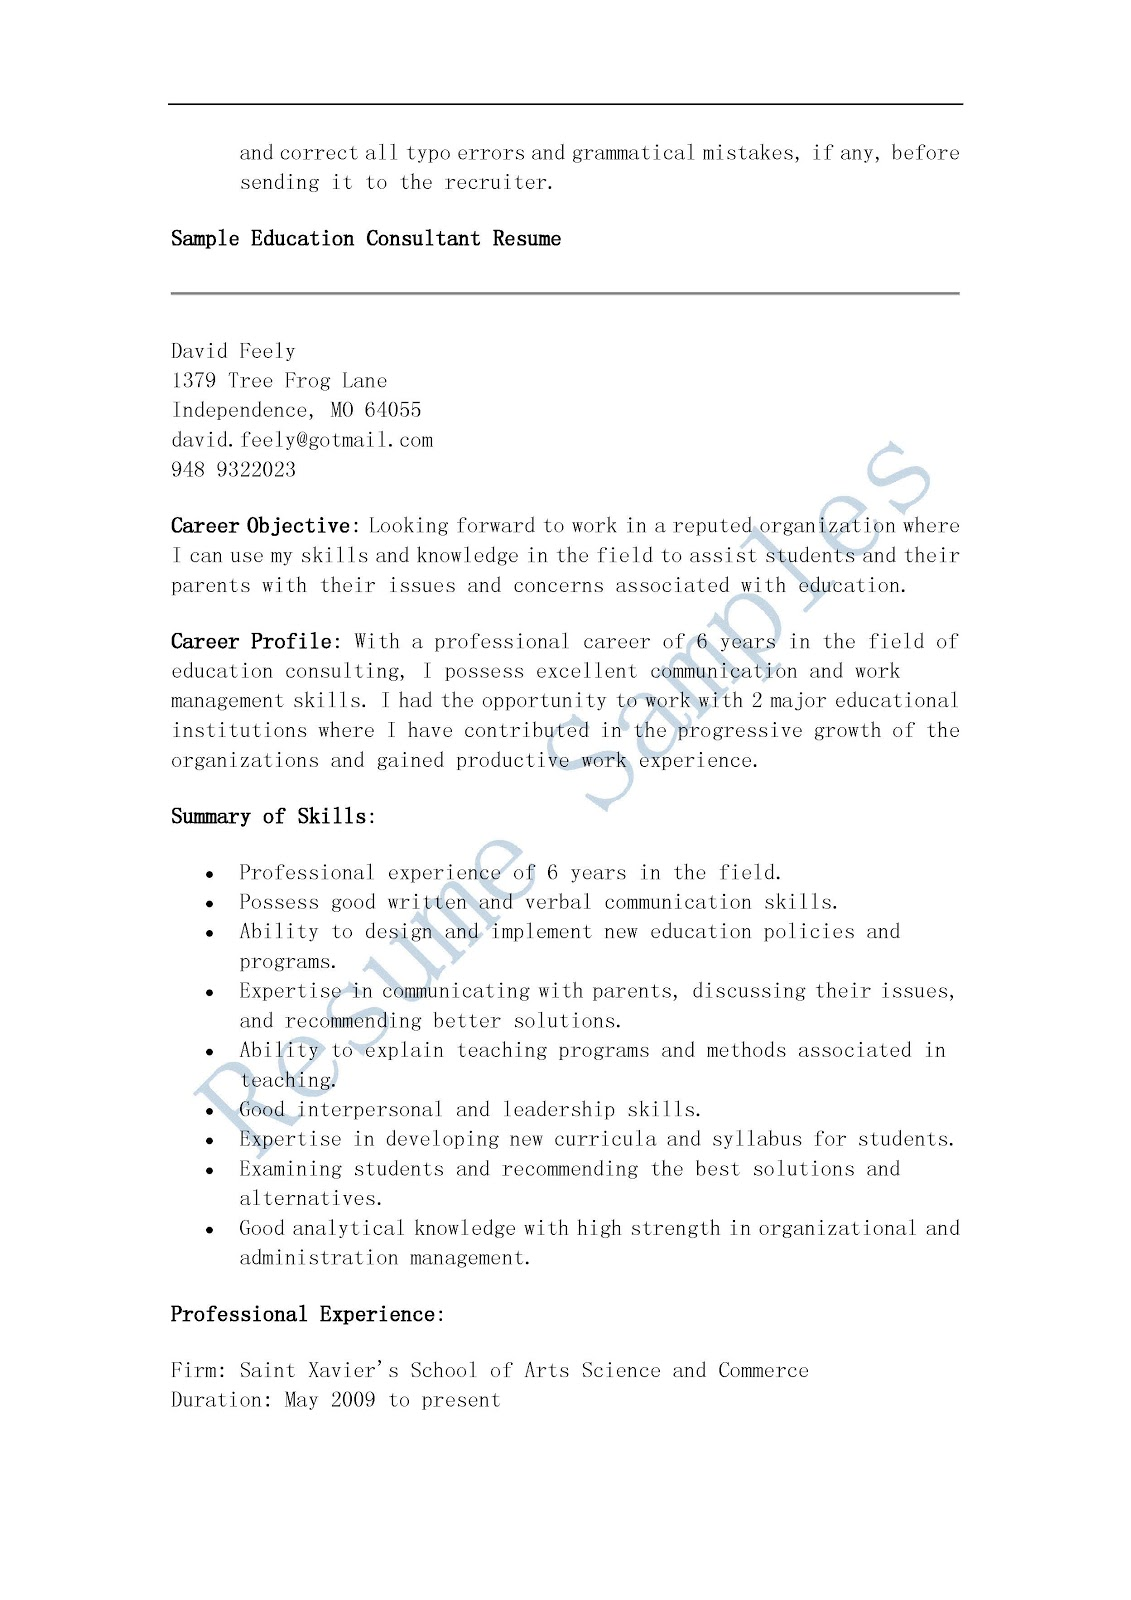 resume samples education consultant resume